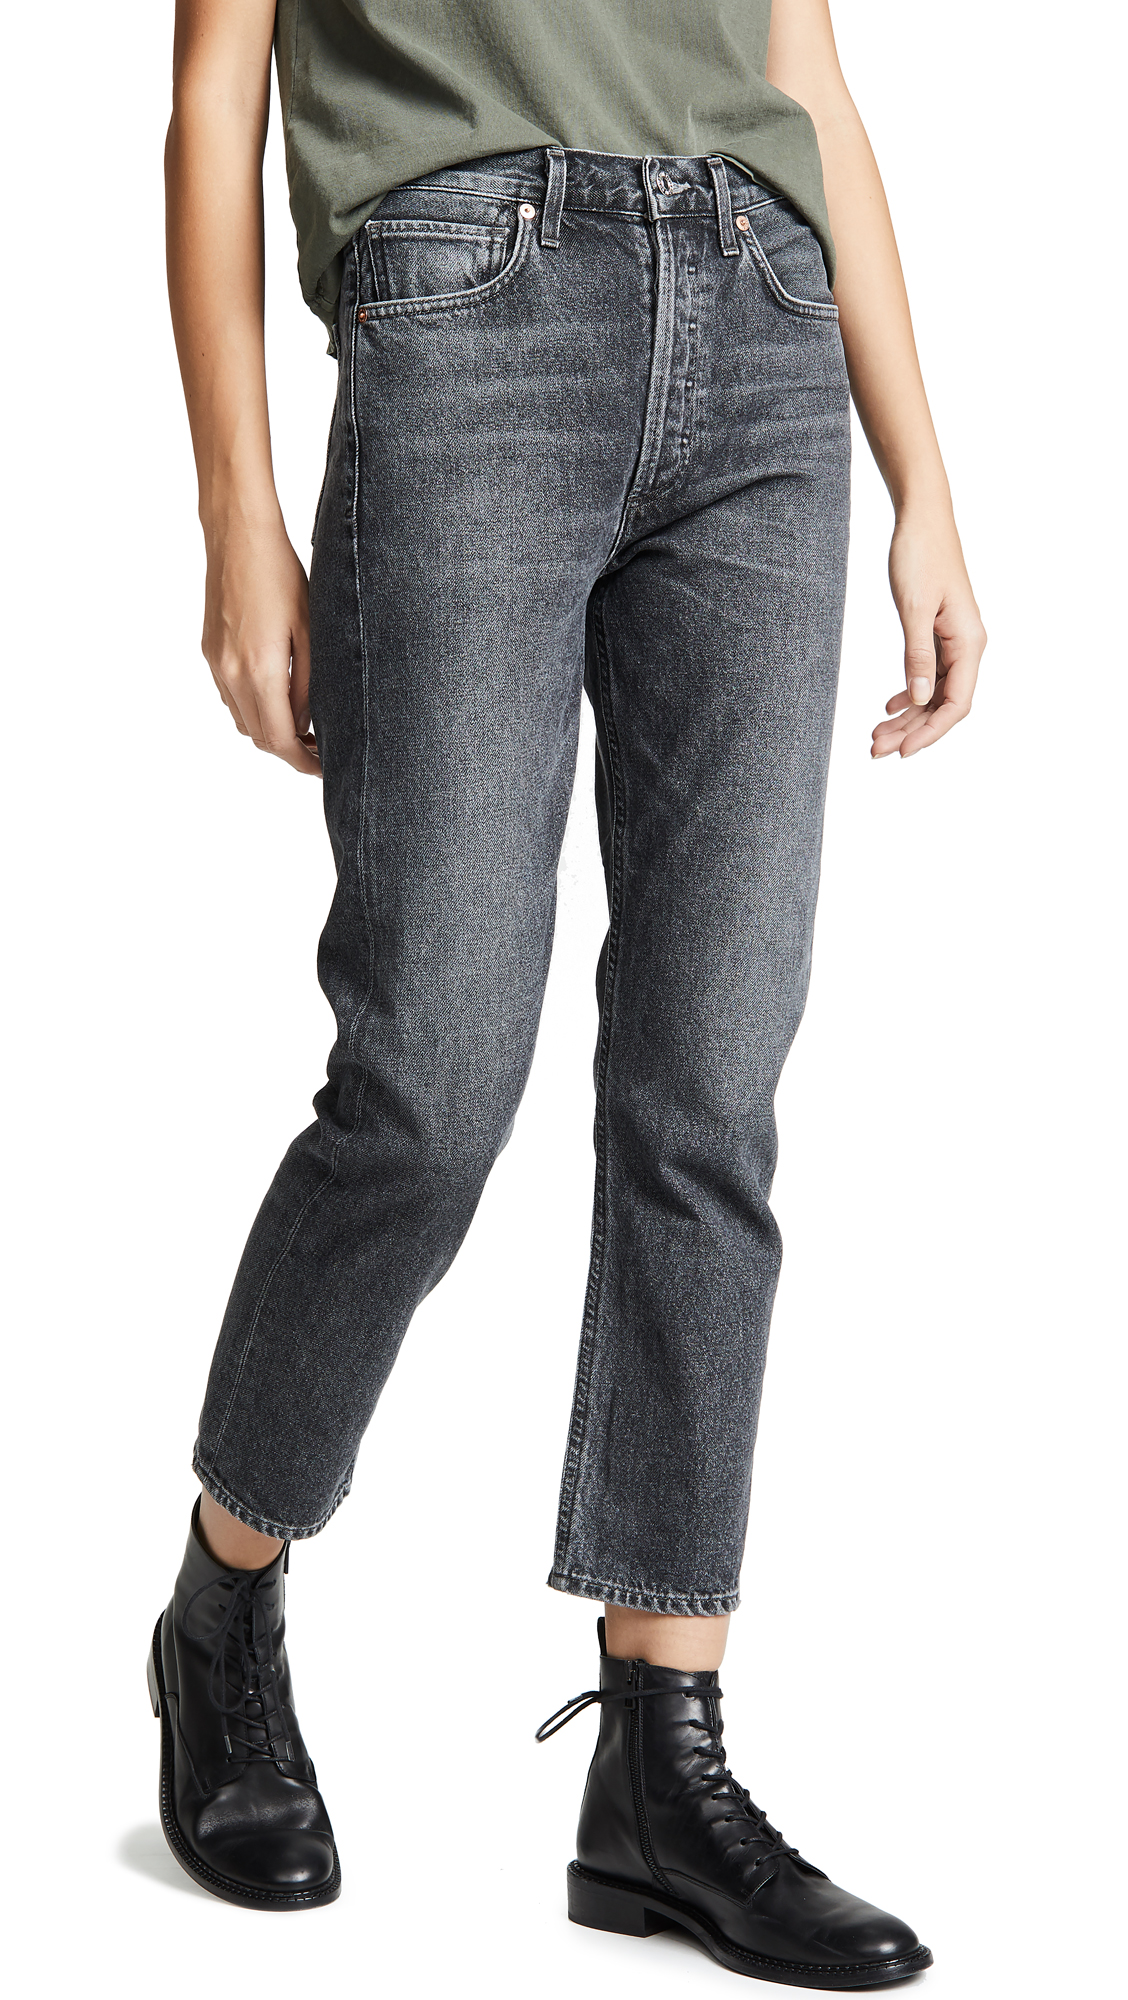 Citizens of Humanity Charlotte Crop High Rise Straight Jeans - Infinity